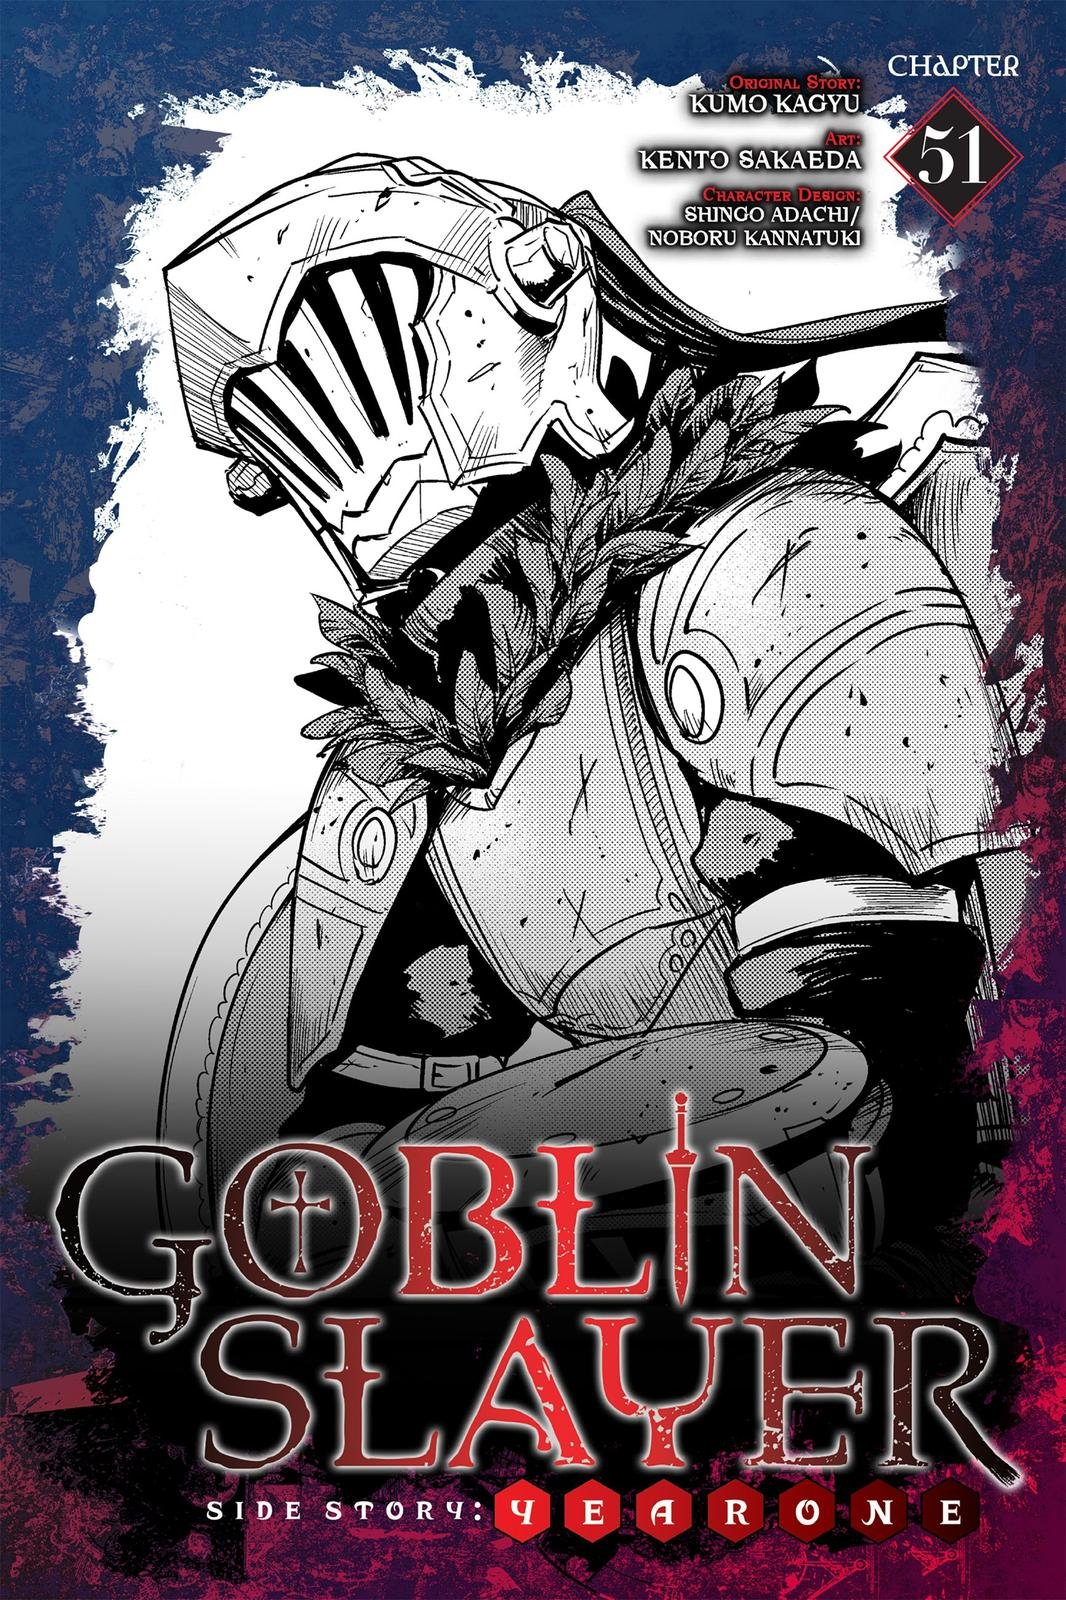 Manga Goblin Slayer Side Story: Year One - Chapter 51 Page 1